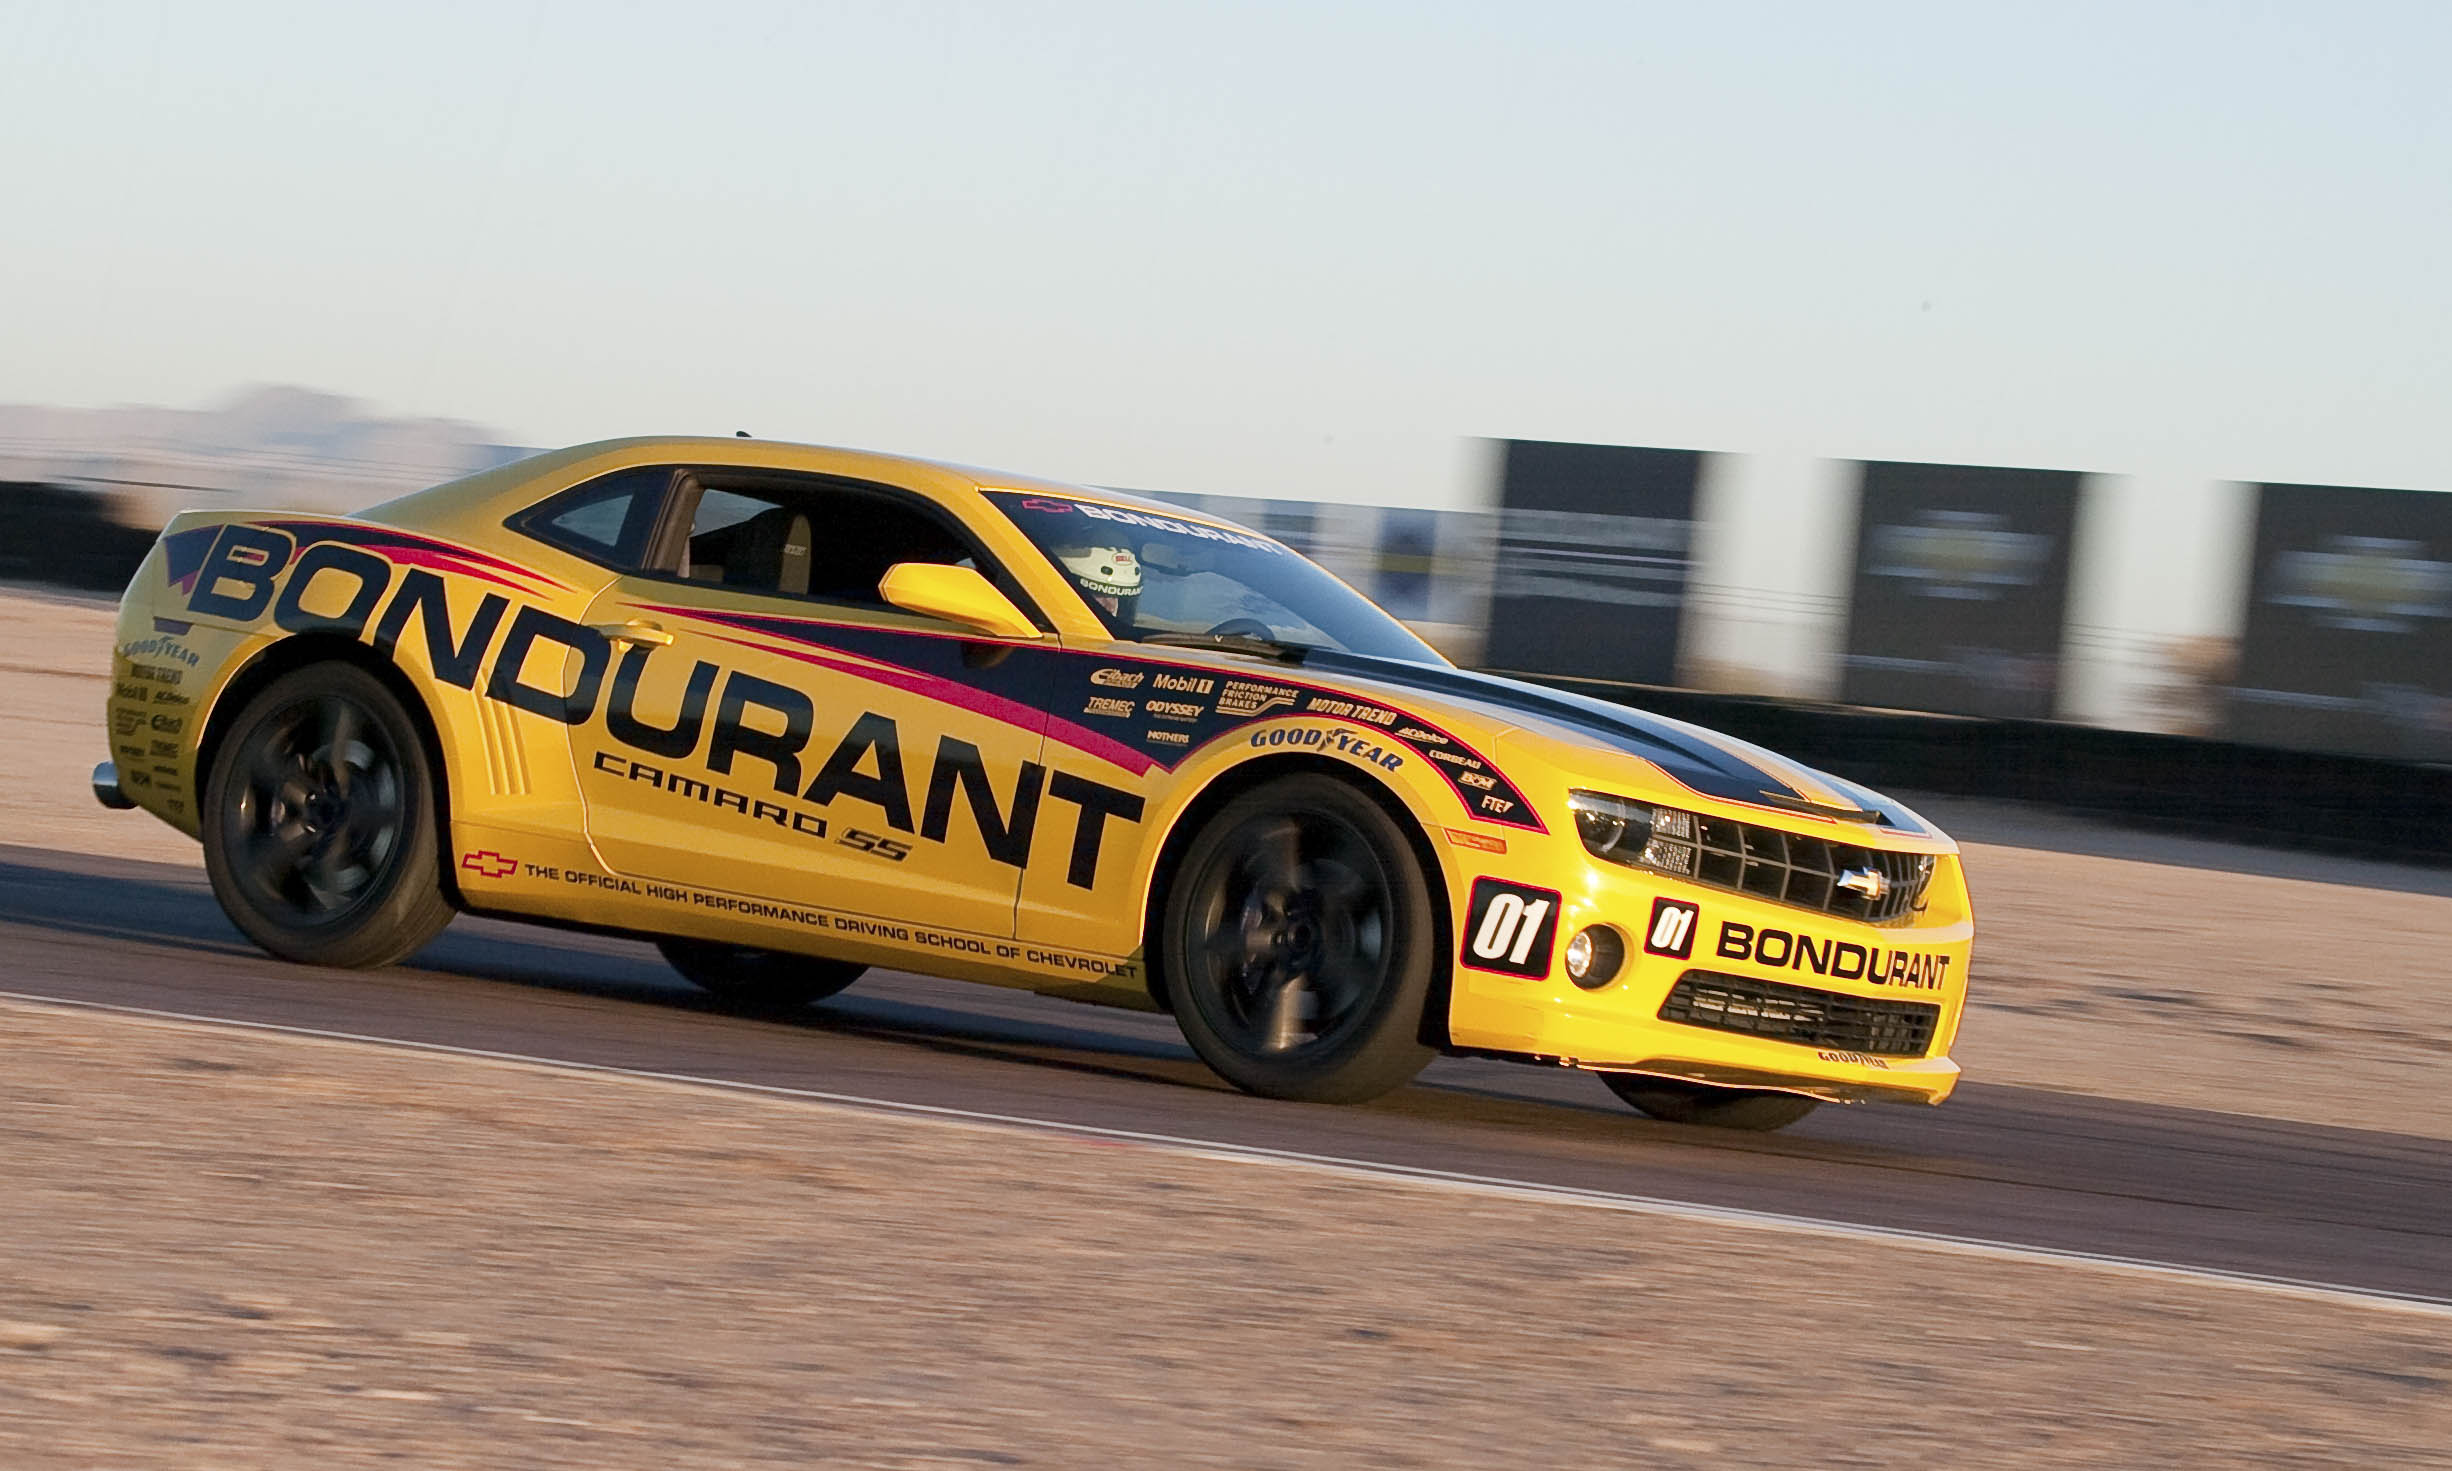 © Bondurant School of High Performance Driving